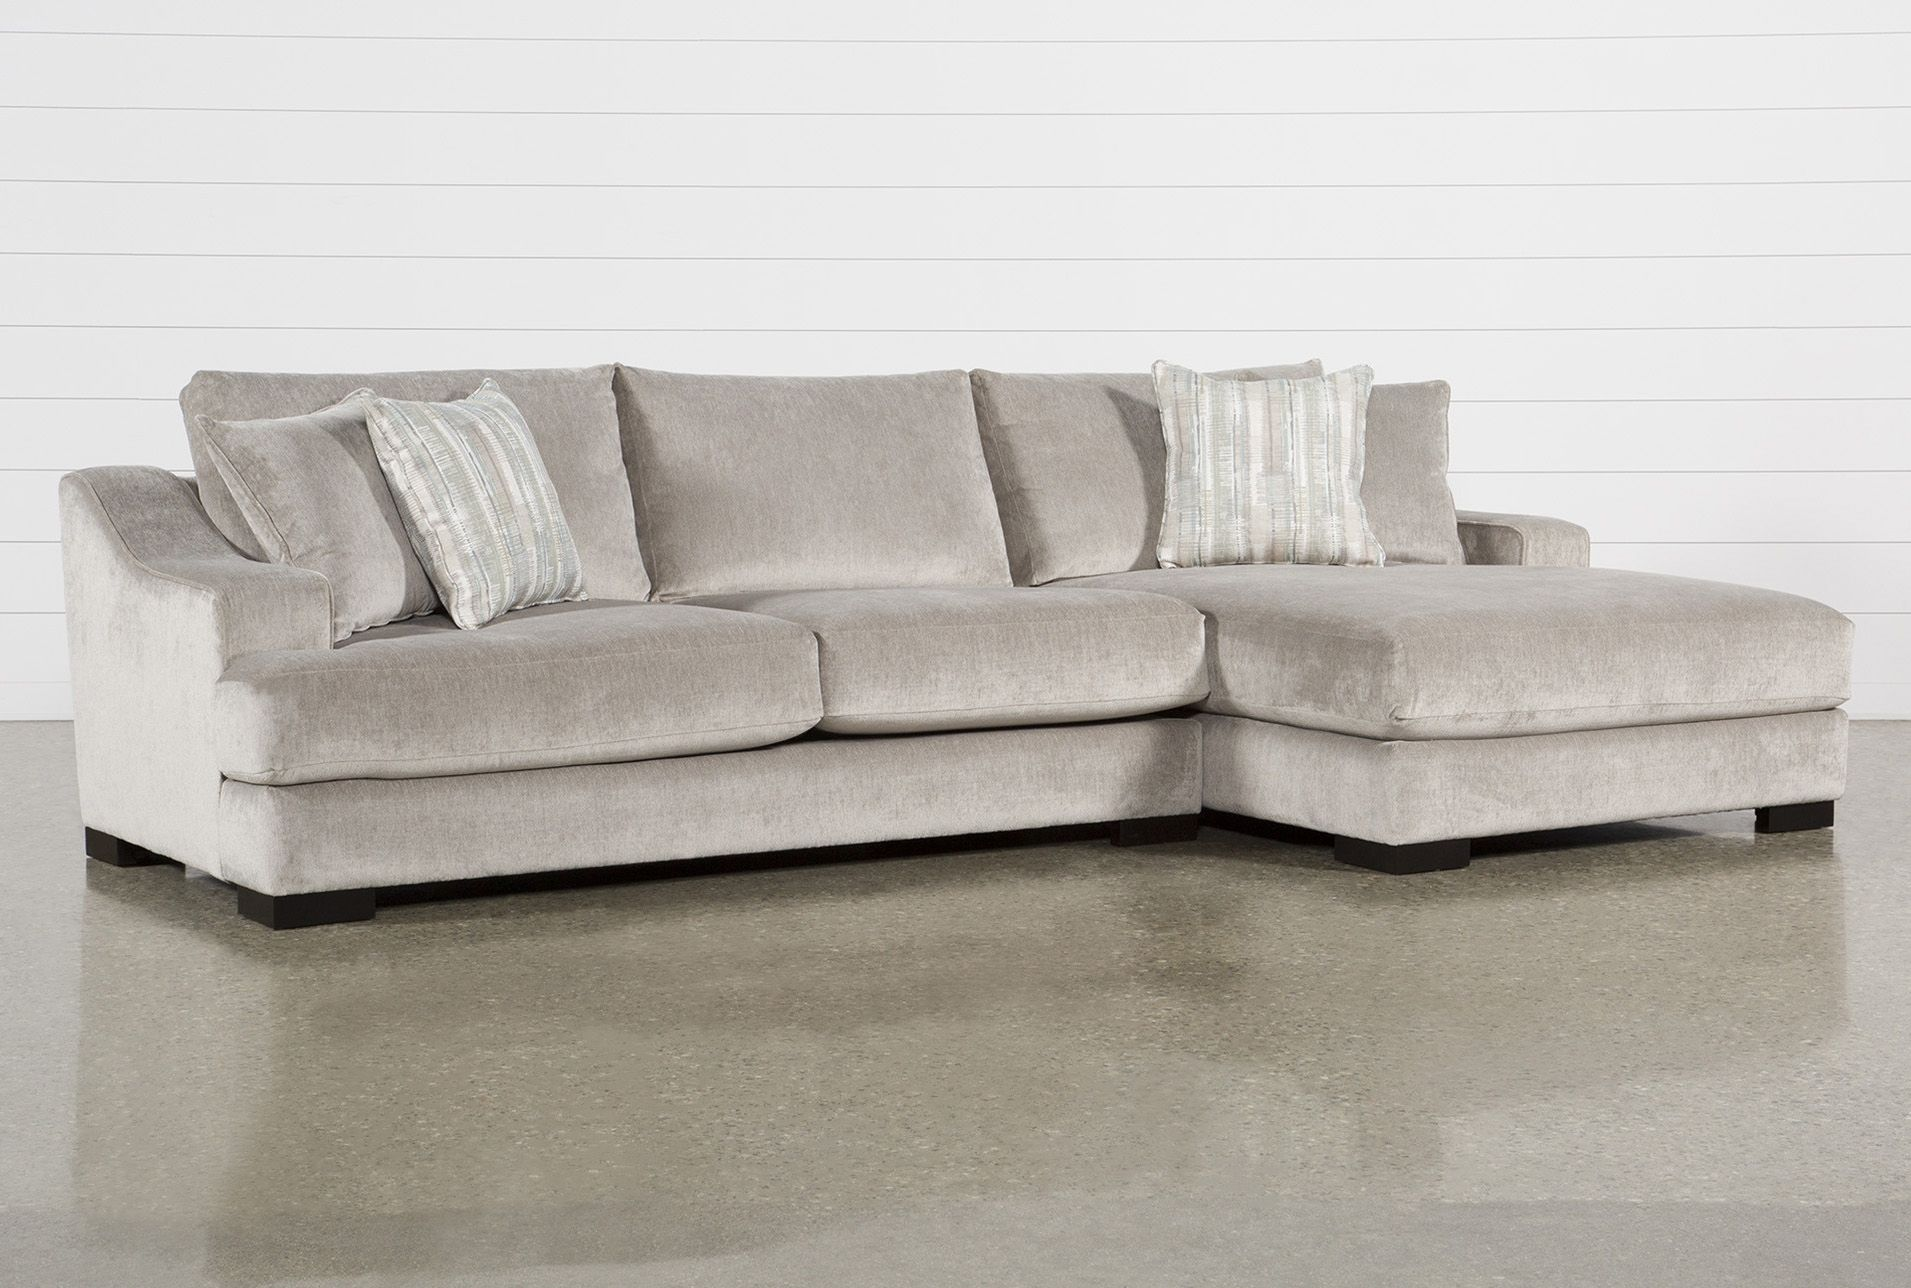 Lodge Fog 2 Piece 139 Sectional With Right Arm Facing Oversized Chaise 2 Piece Sectional Sofa Facing Sofas Sectional 2 piece sectional sofa with chaise